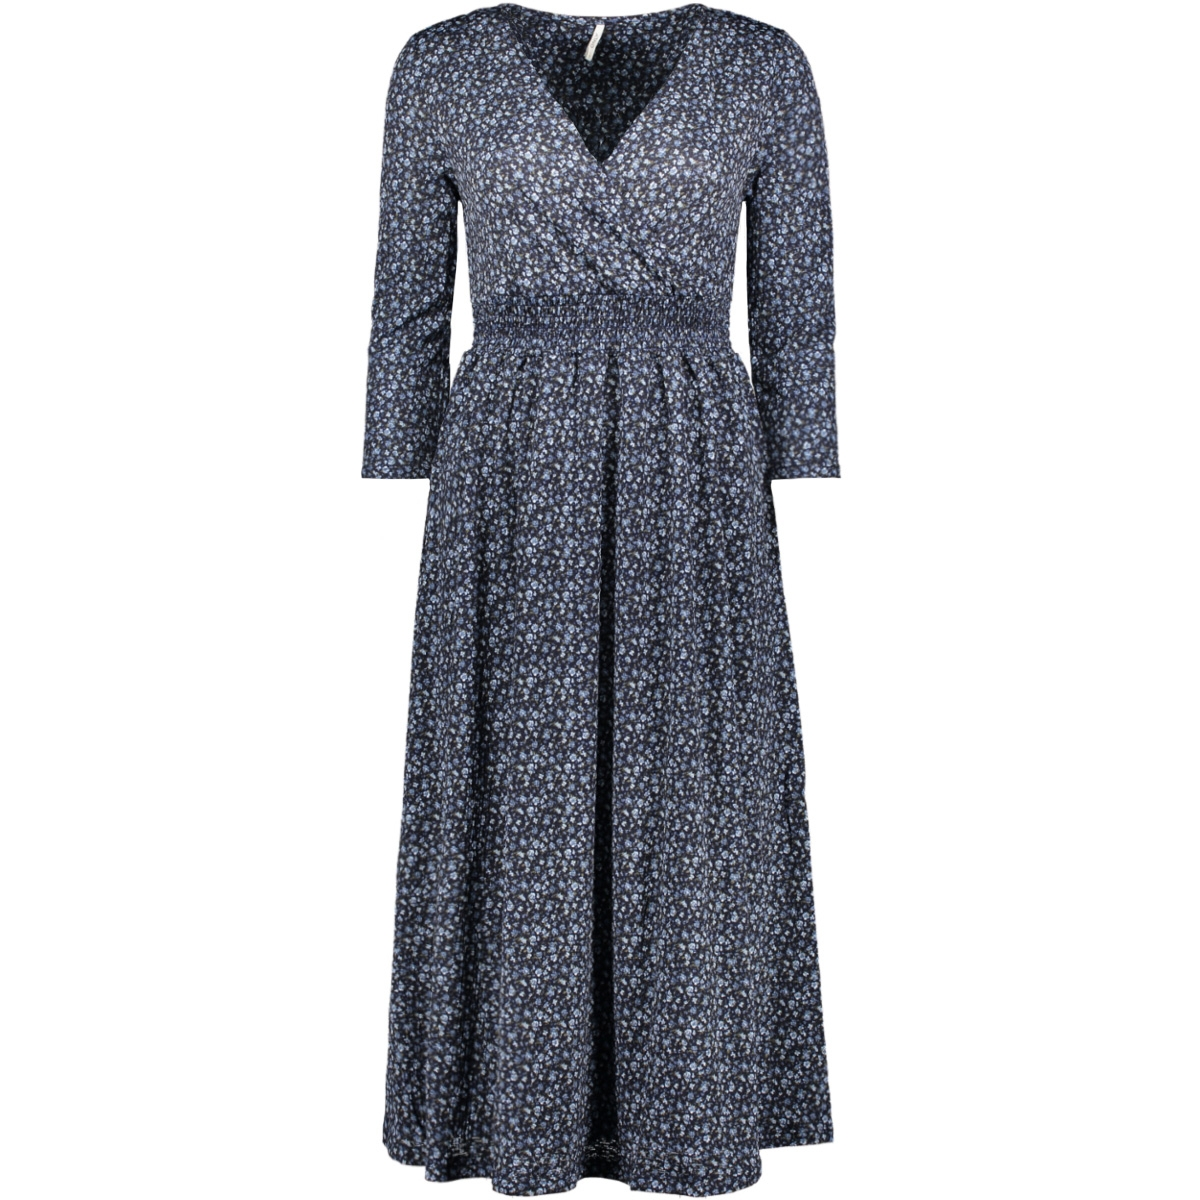 onlpella 3/4 aop dress jrs 15202182 only jurk night sky/route dits